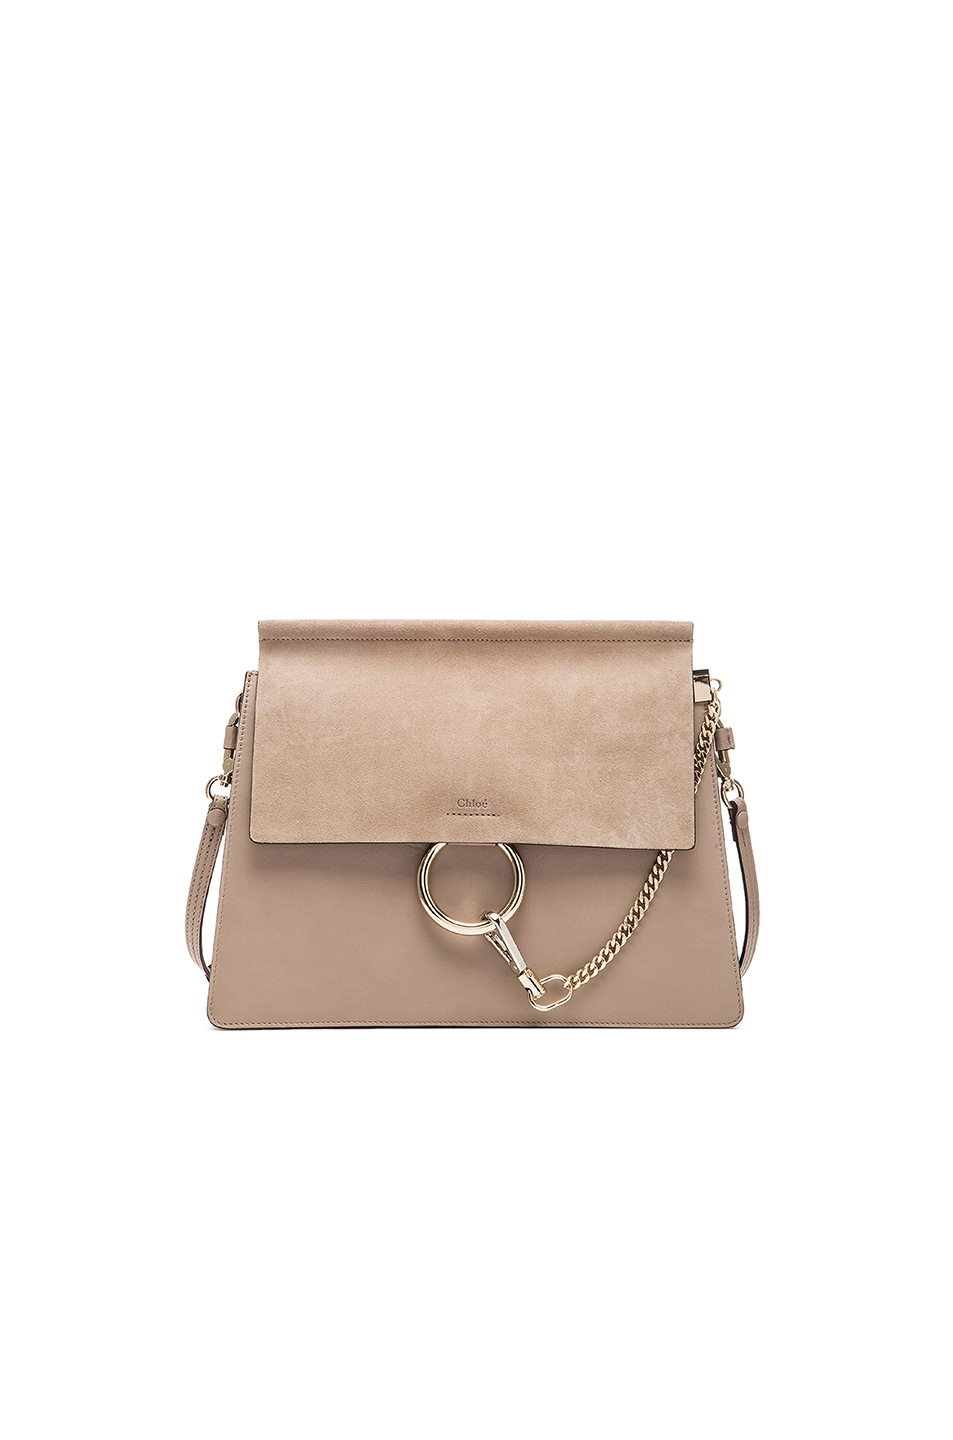 Image 1 of Chloe Medium Faye Suede & Calfskin Shoulder Bag in Motty Grey